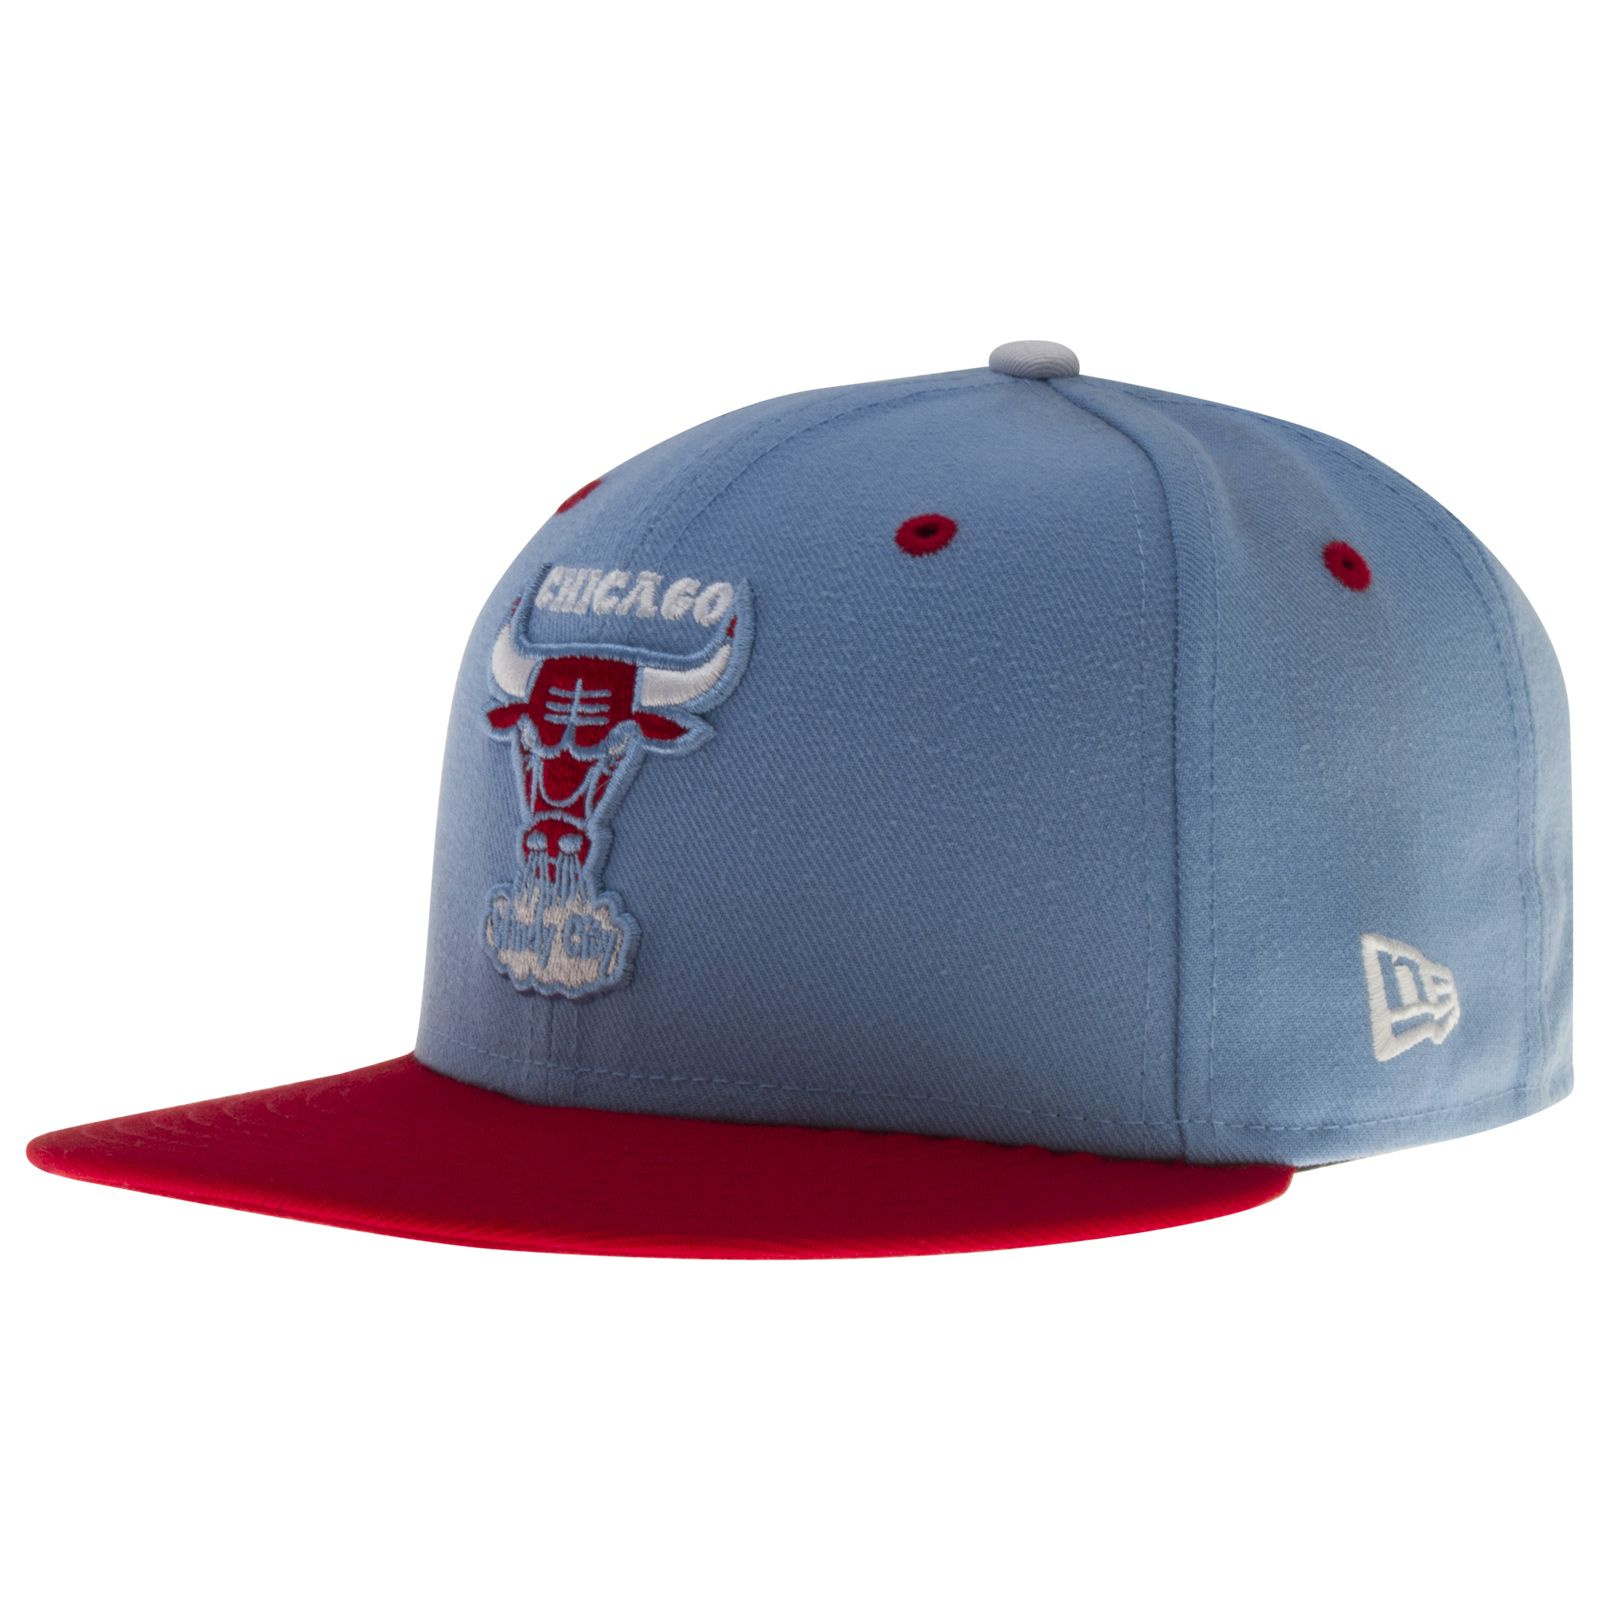 3ab60009659 Chicago Bulls Sky Blue and Red Windy City Bull Logo Chicago Flag Flat Bill  Fitted Hat by New Era  Chicago  ChicagoBulls  Bulls